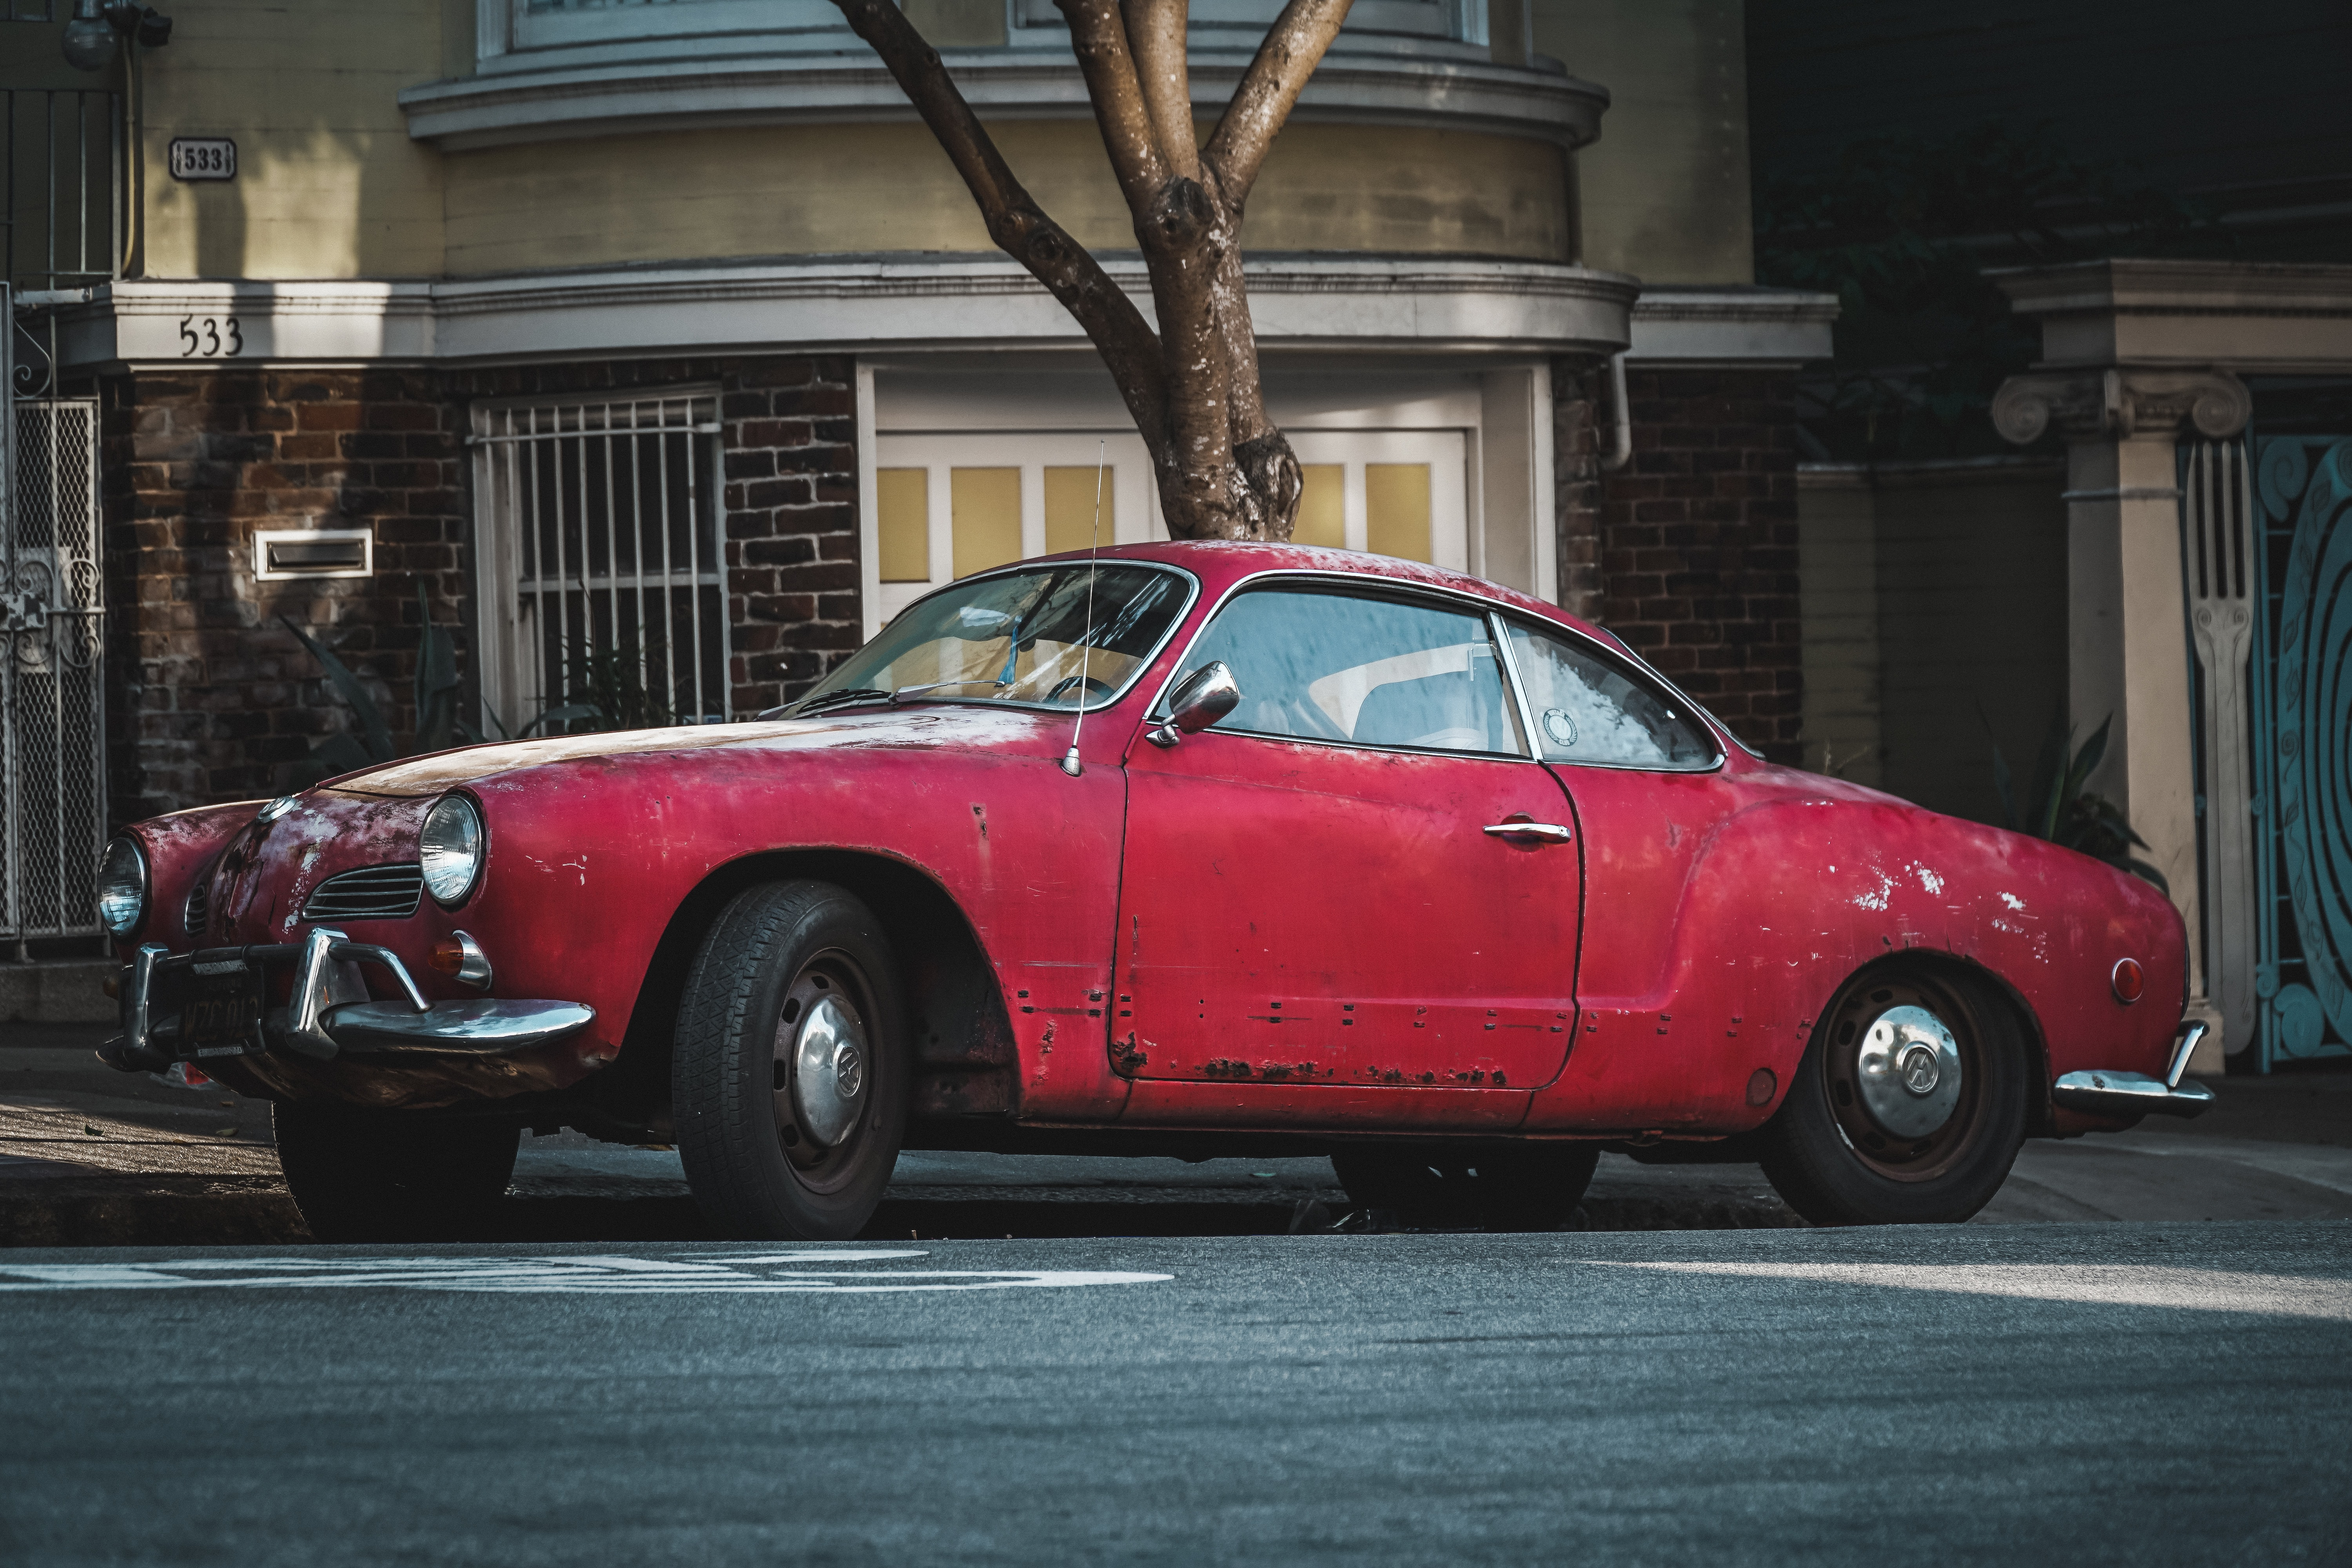 classic red coupe parked beside concrete curb